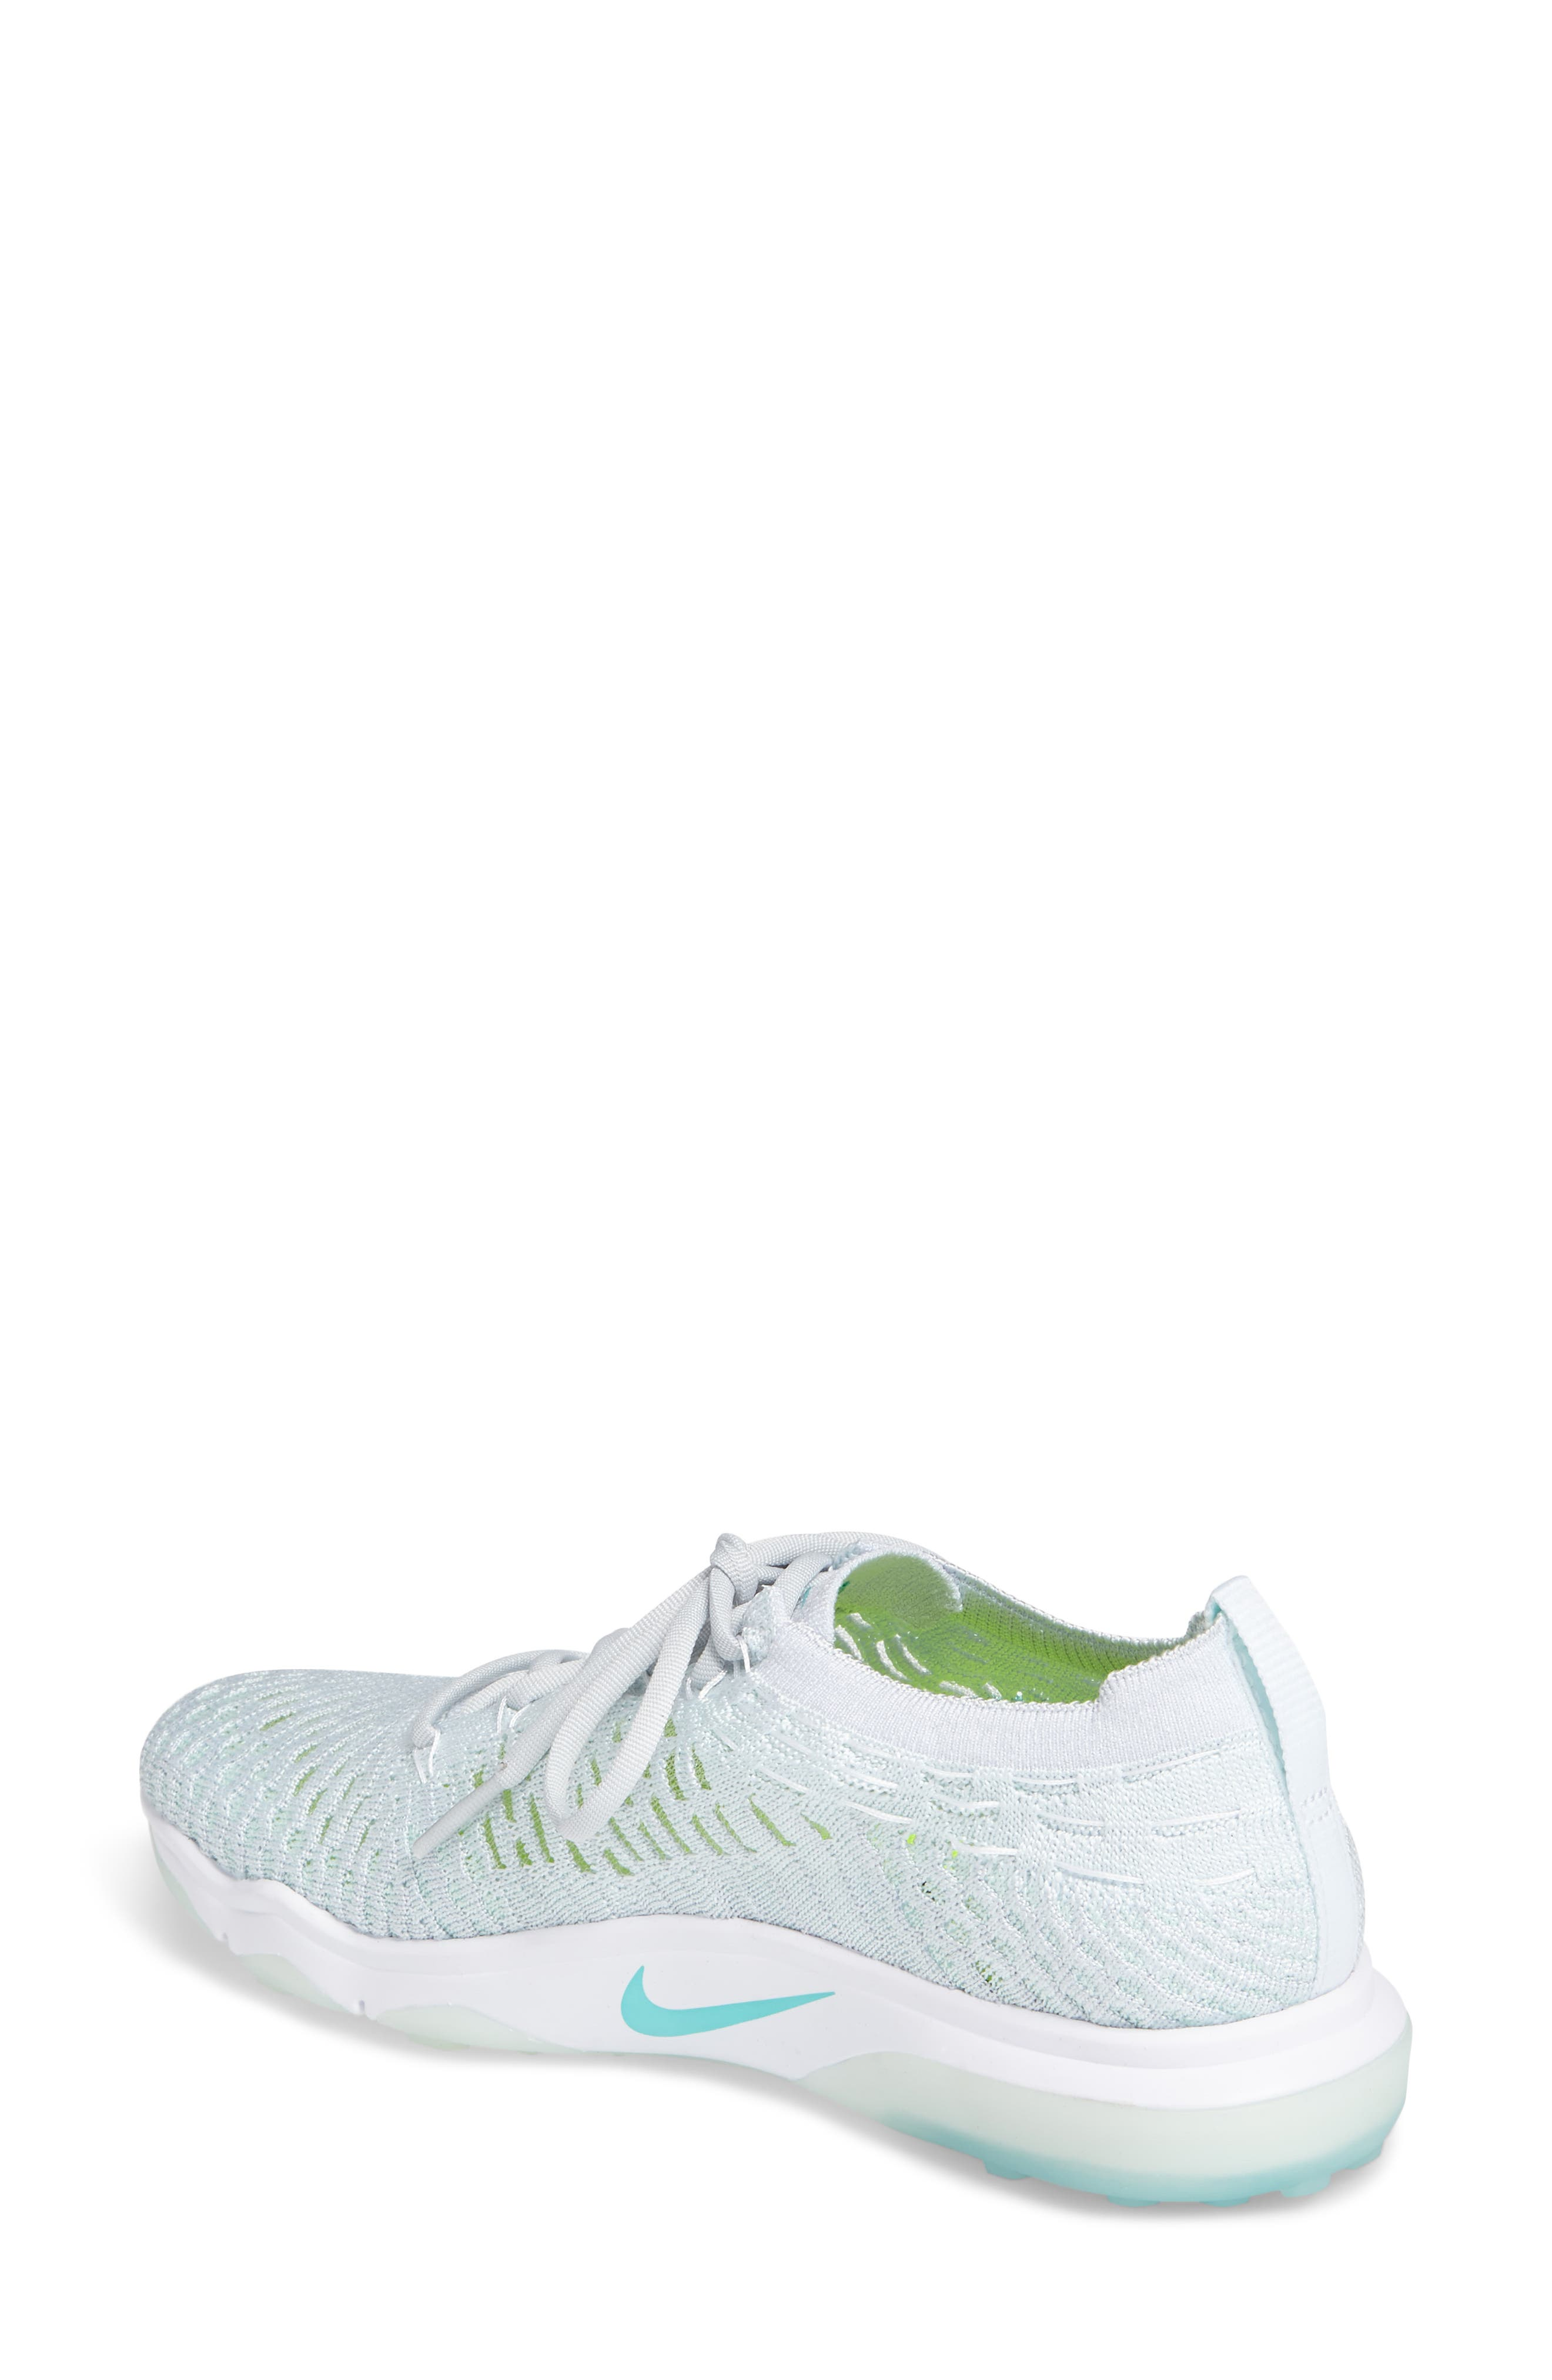 Air Zoom Fearless Flyknit Training Shoe,                             Alternate thumbnail 15, color,